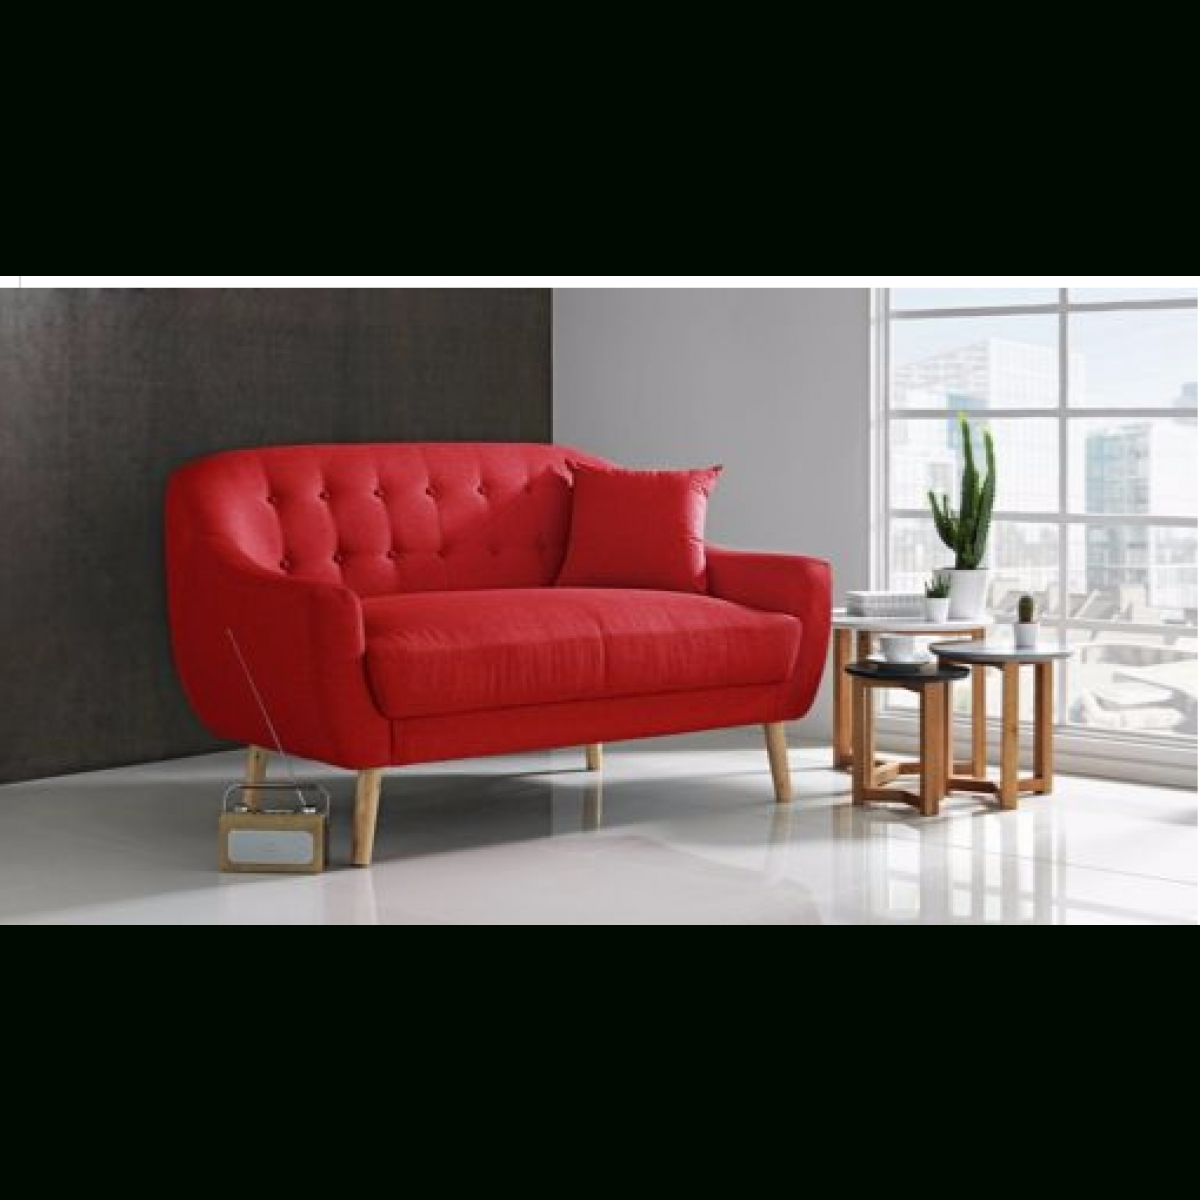 Most Recently Released Hygena Lexie Retro Compact Fabric 2 Seater Sofa – Poppy Red With Regard To Retro Sofas (View 2 of 20)